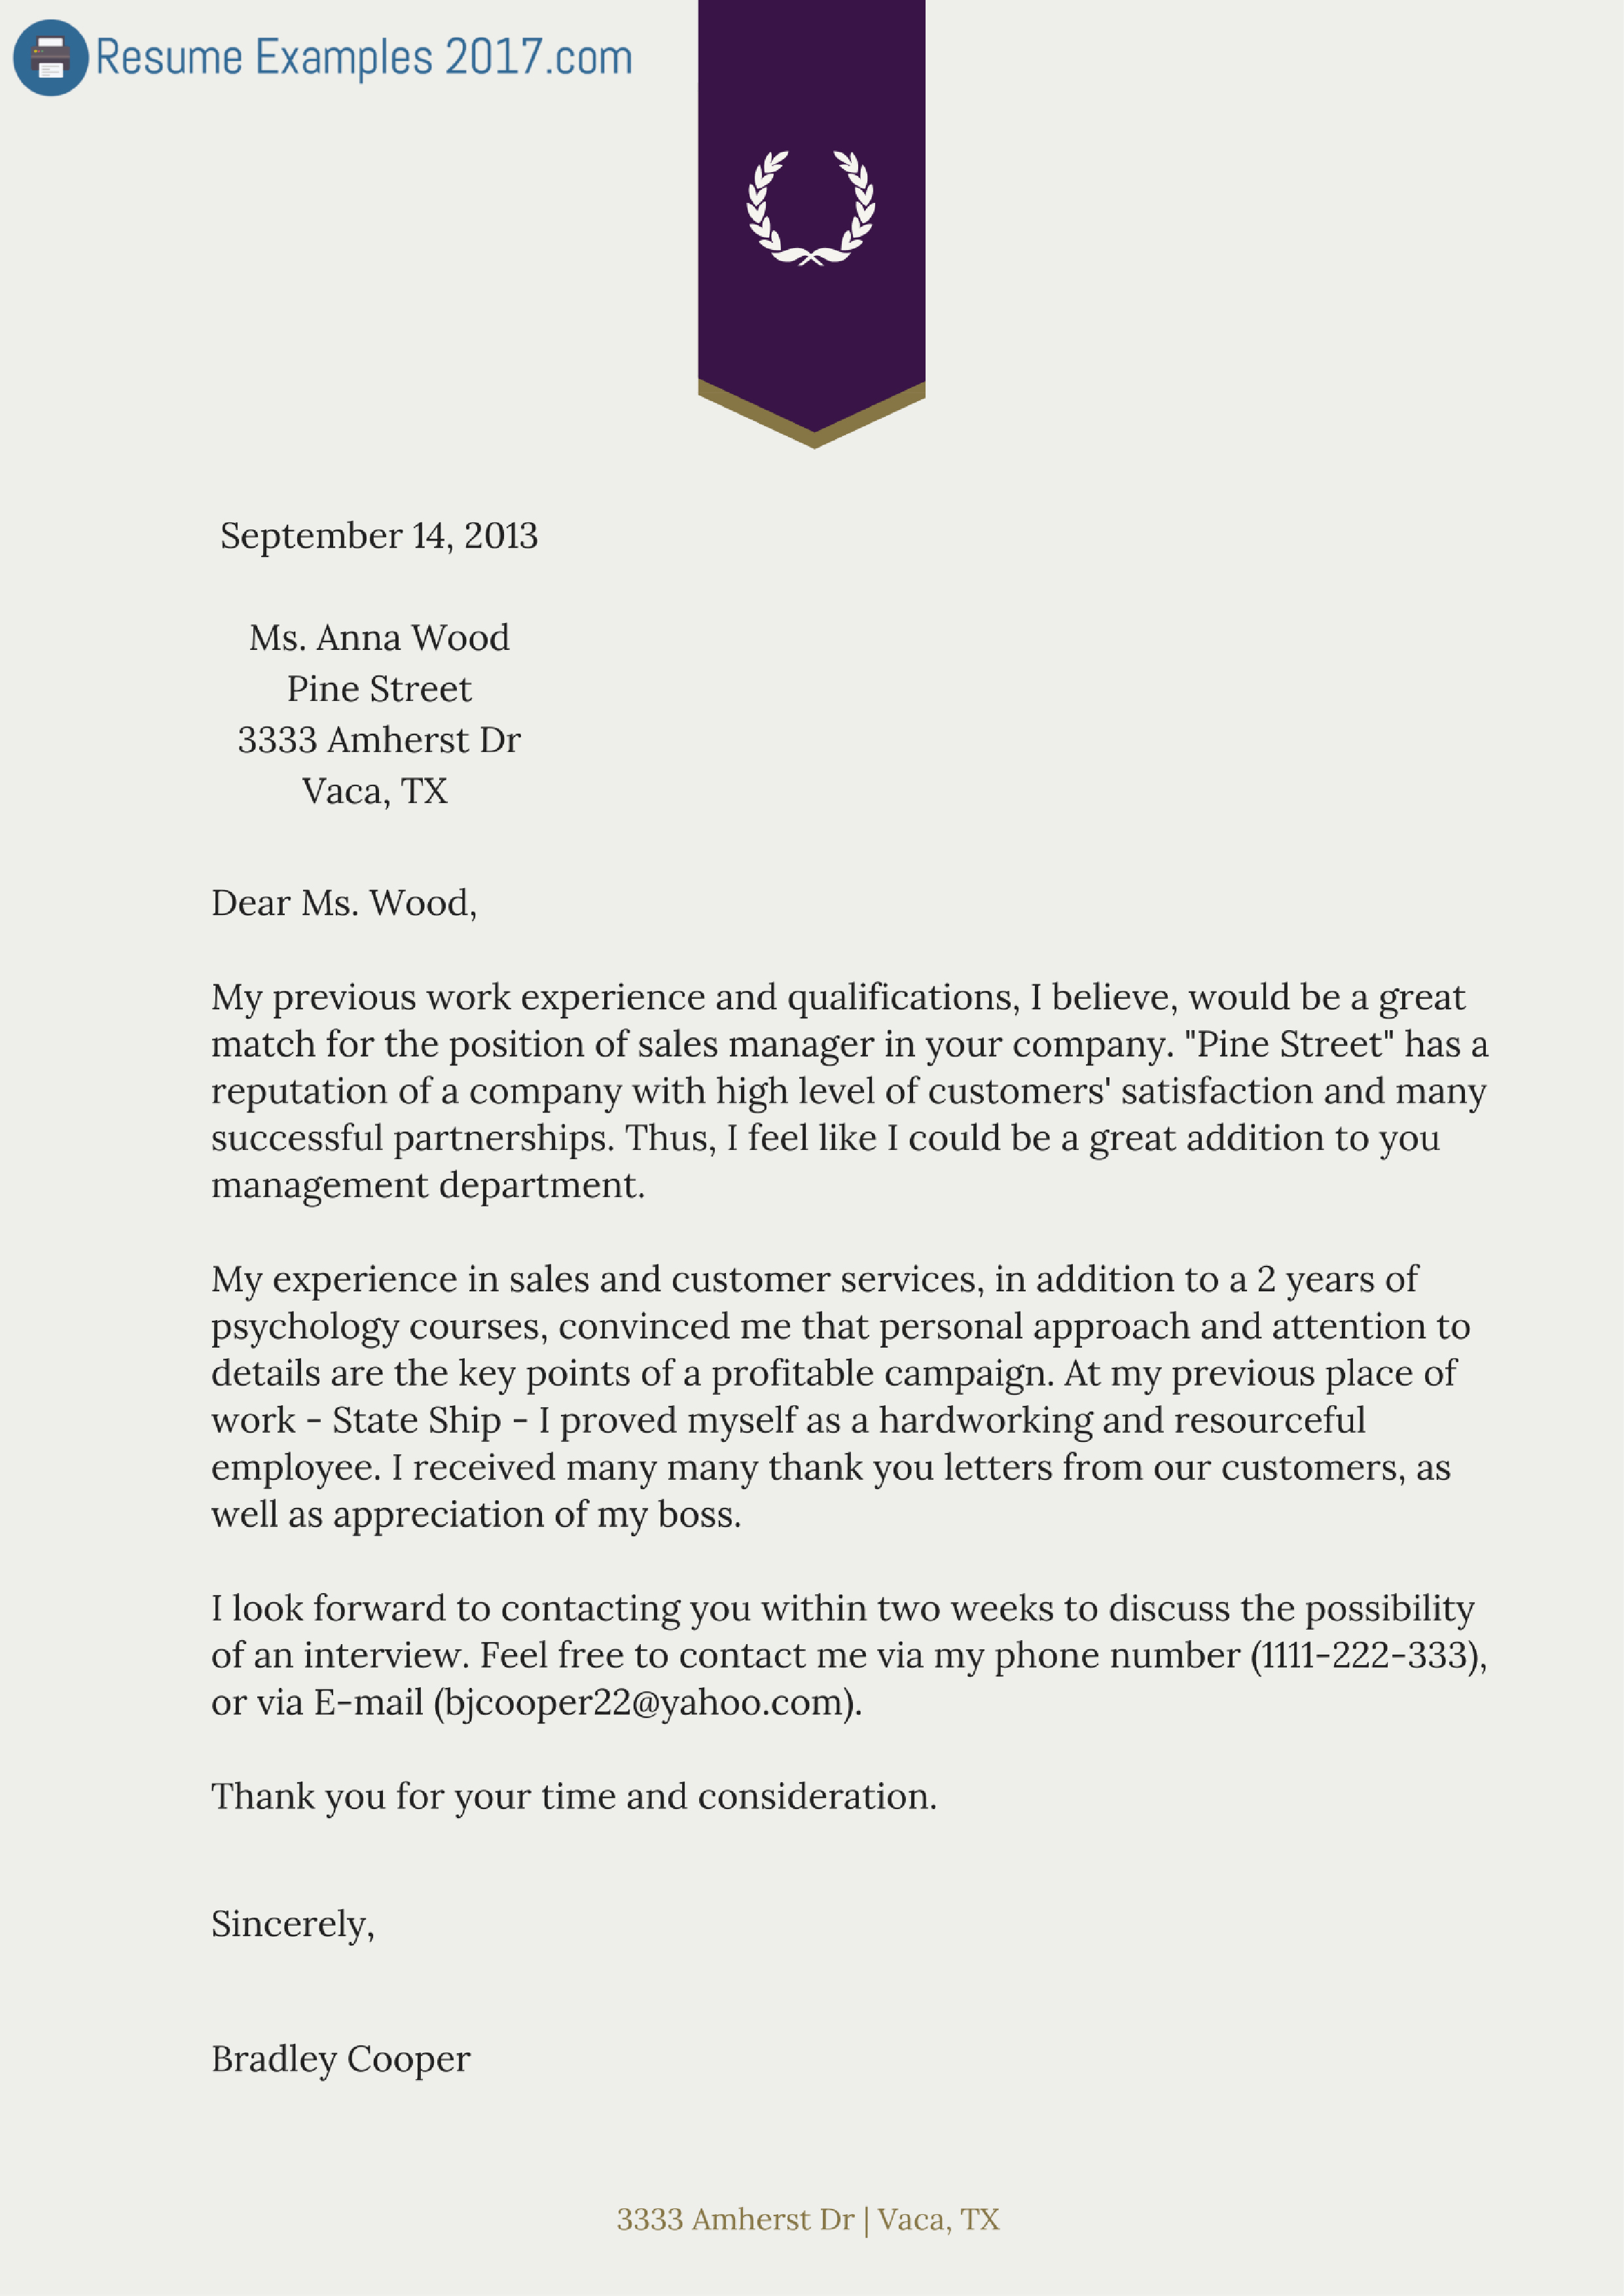 Free Examples Of Cover Letter Luxury Download Cover Letter Samples